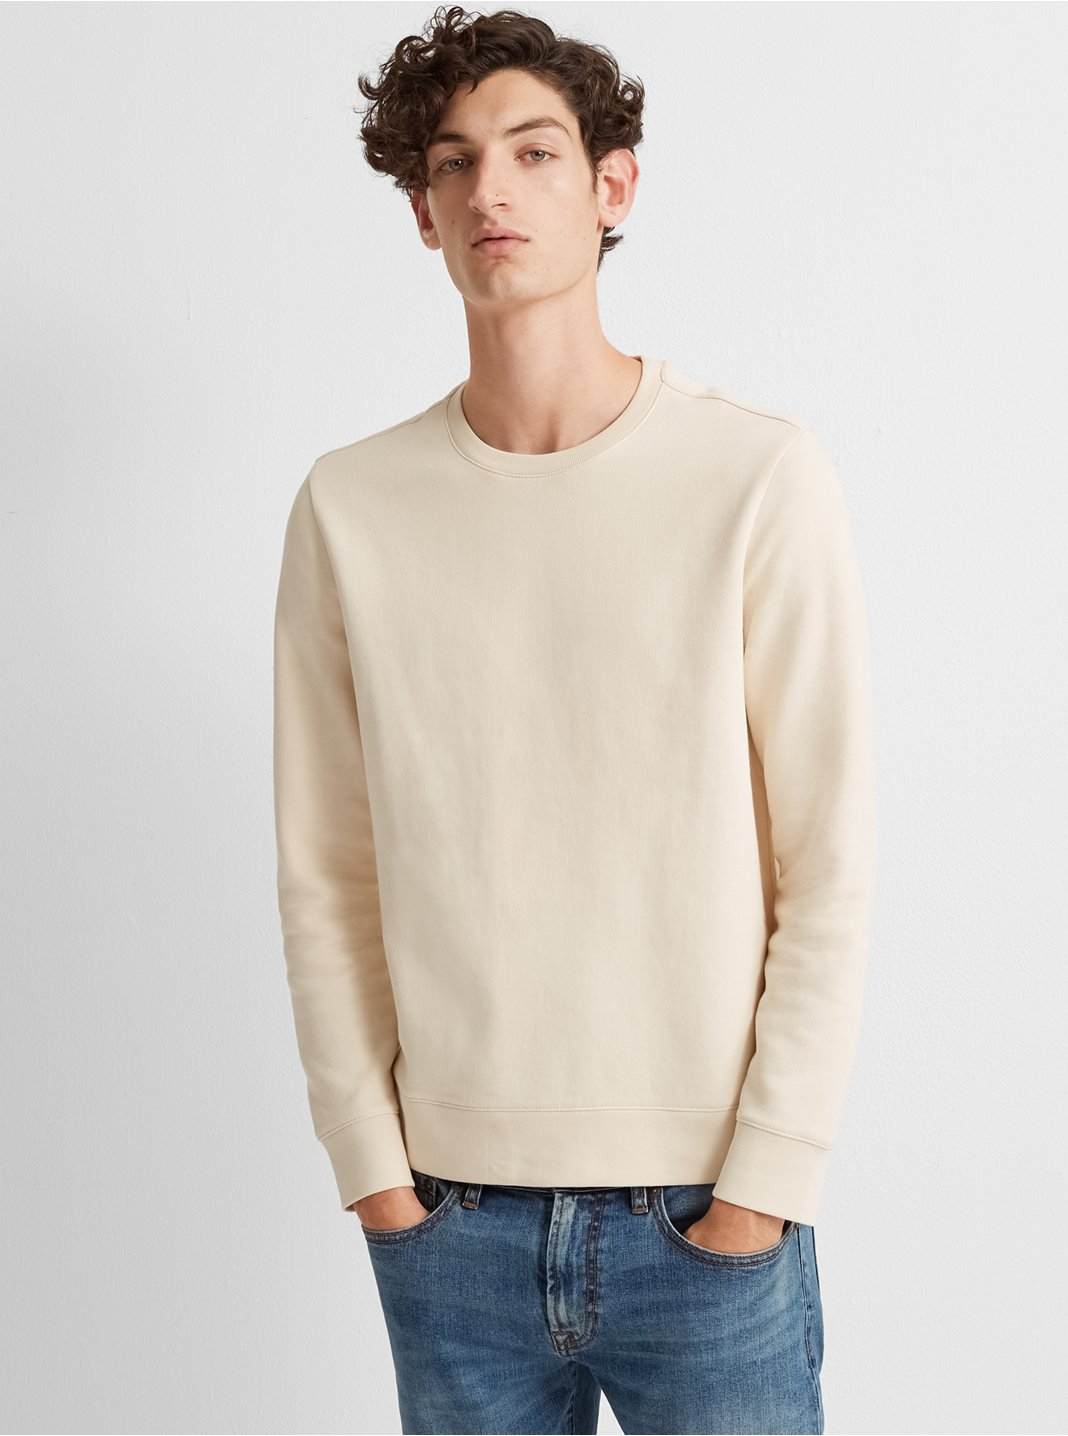 Piece-Dyed Sweatshirt